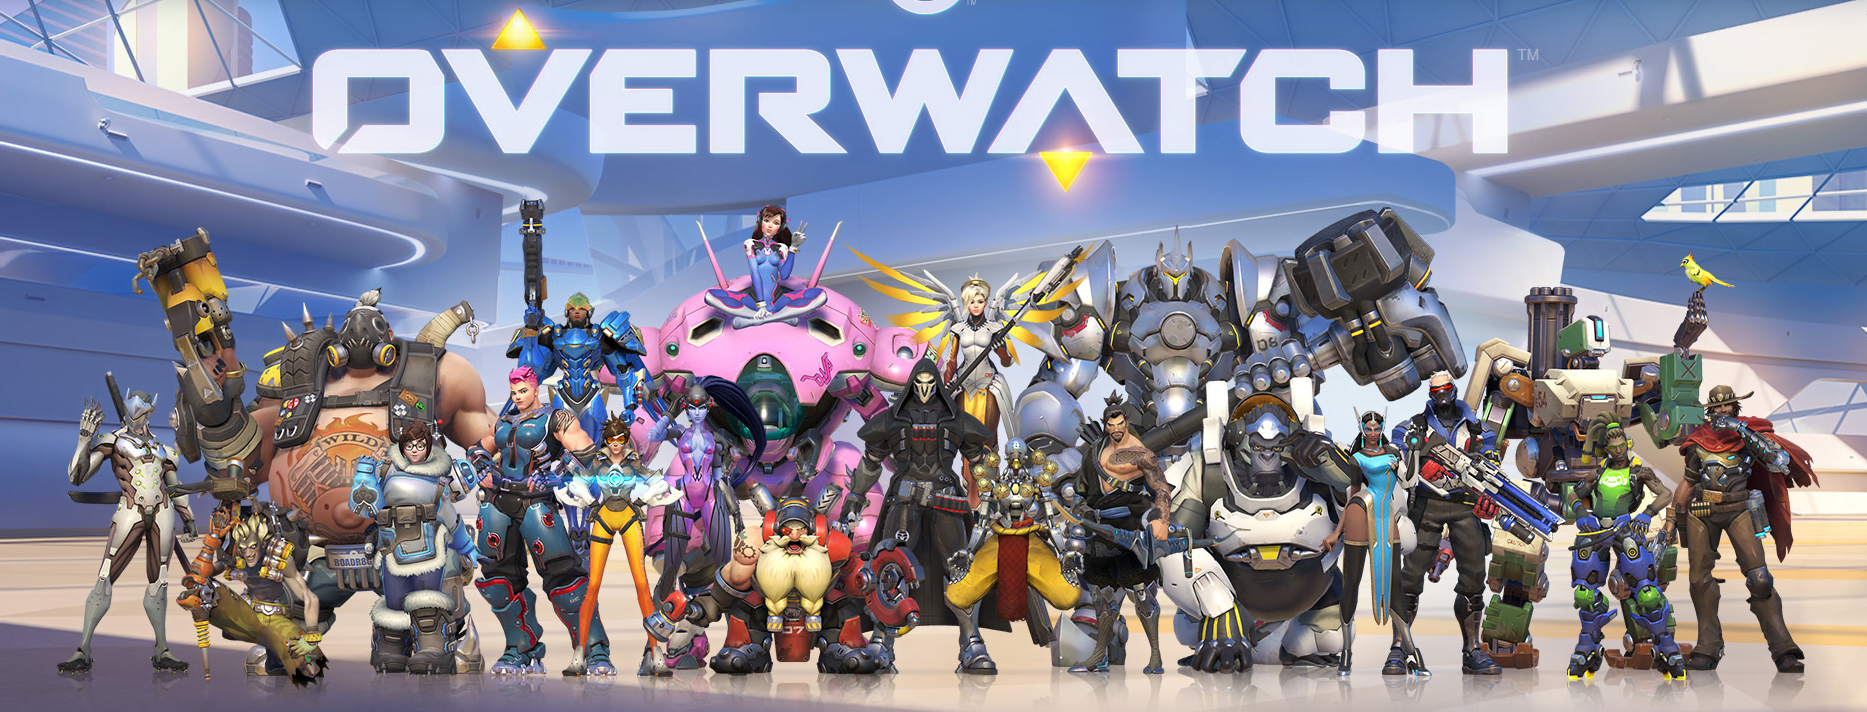 Overwatch Full Version Free Download